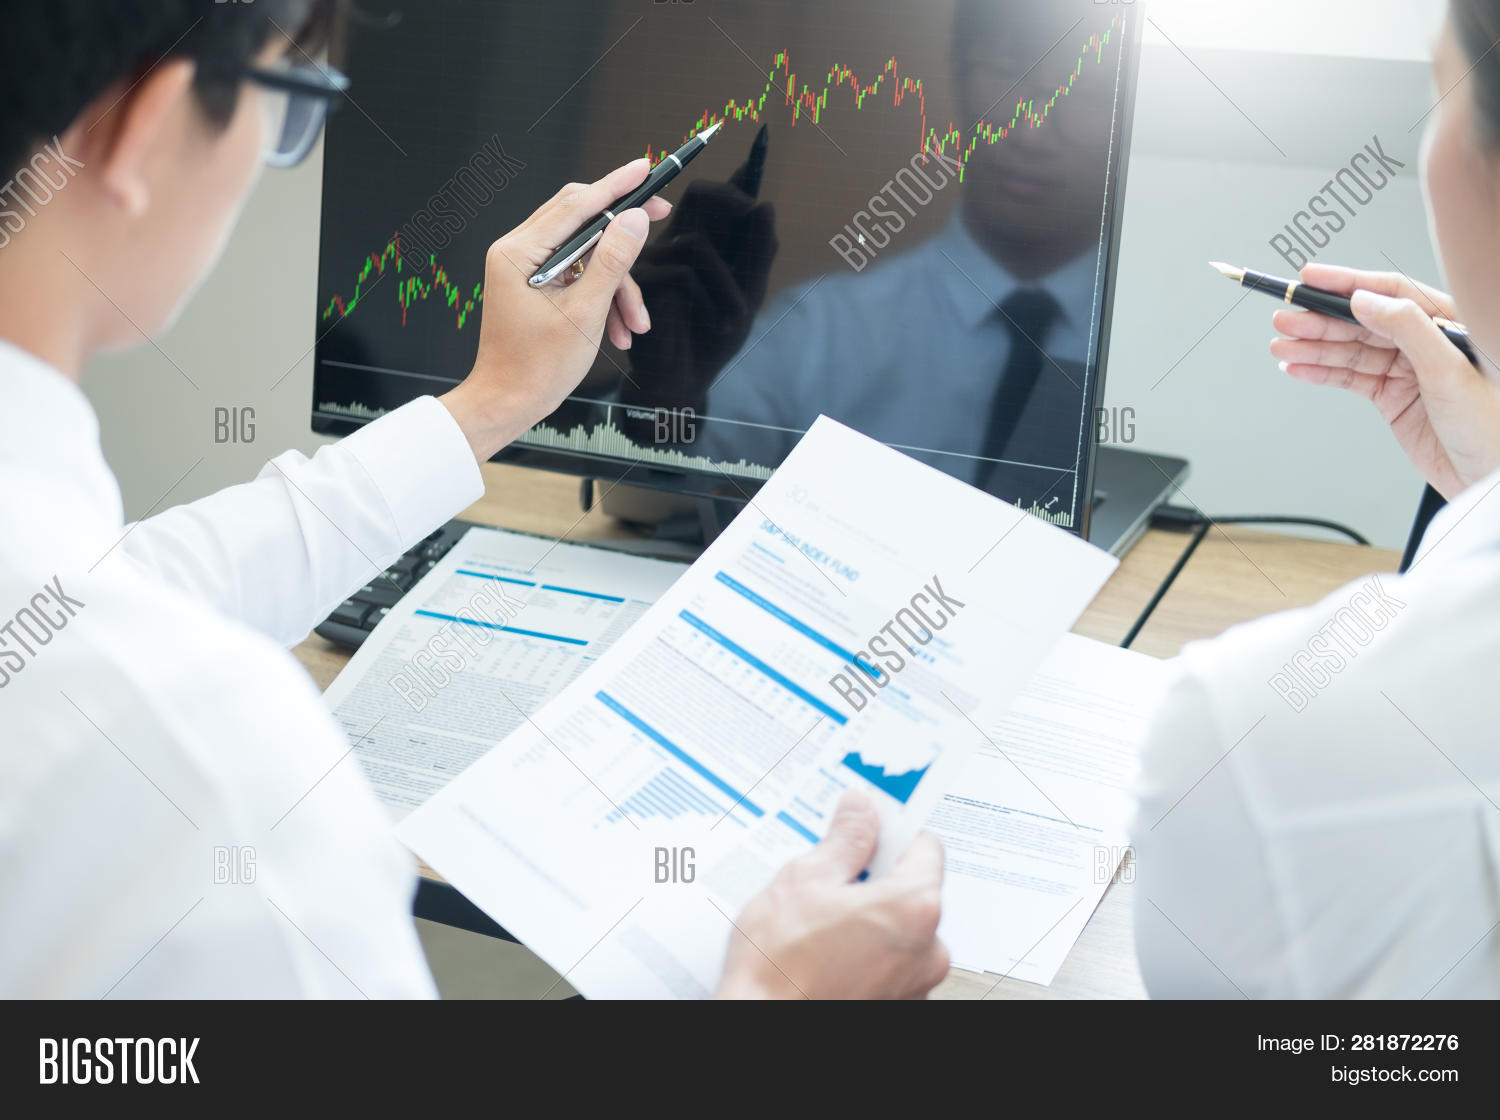 Team Investment Entrepreneur Discussing And Analysis Forex Trading Charts And Graphs On Computer Scr